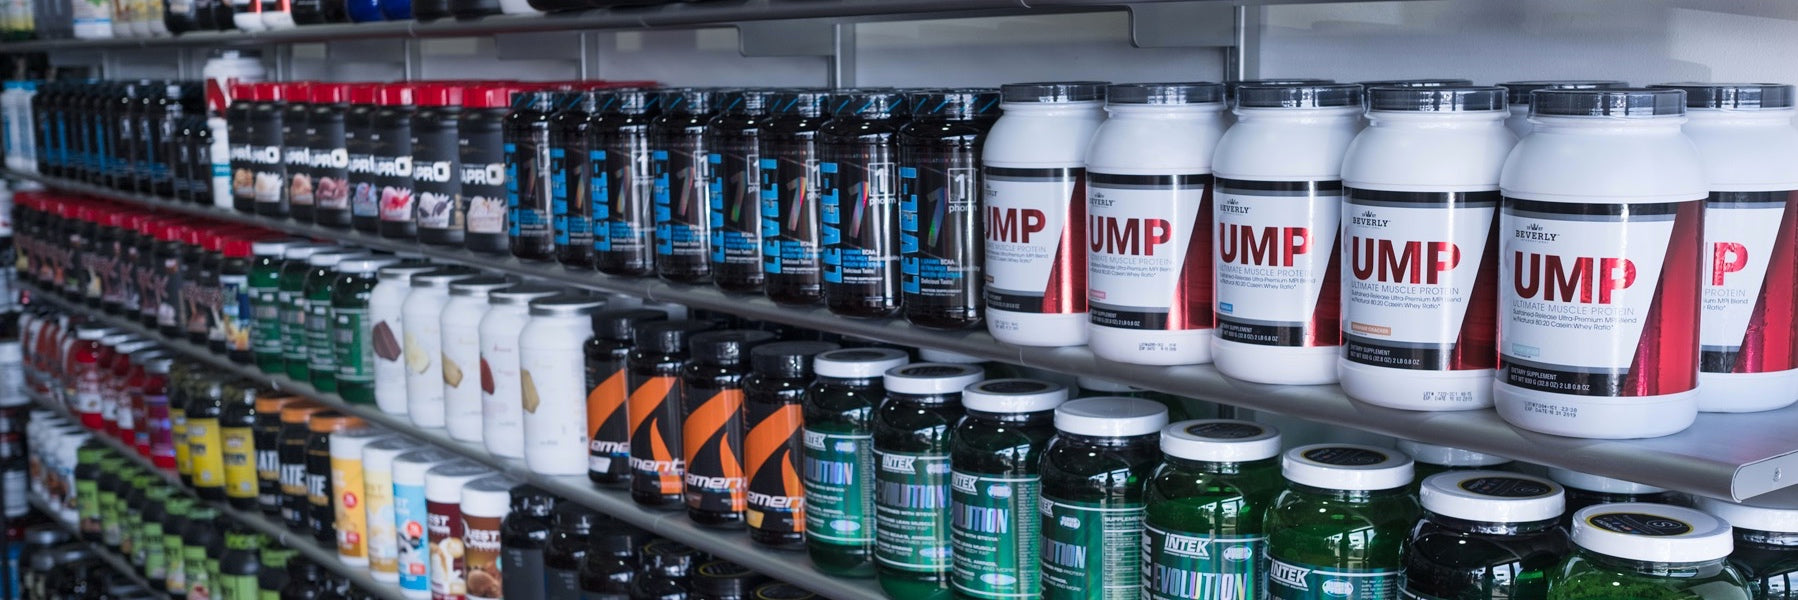 supplement-superstores-protein-selection